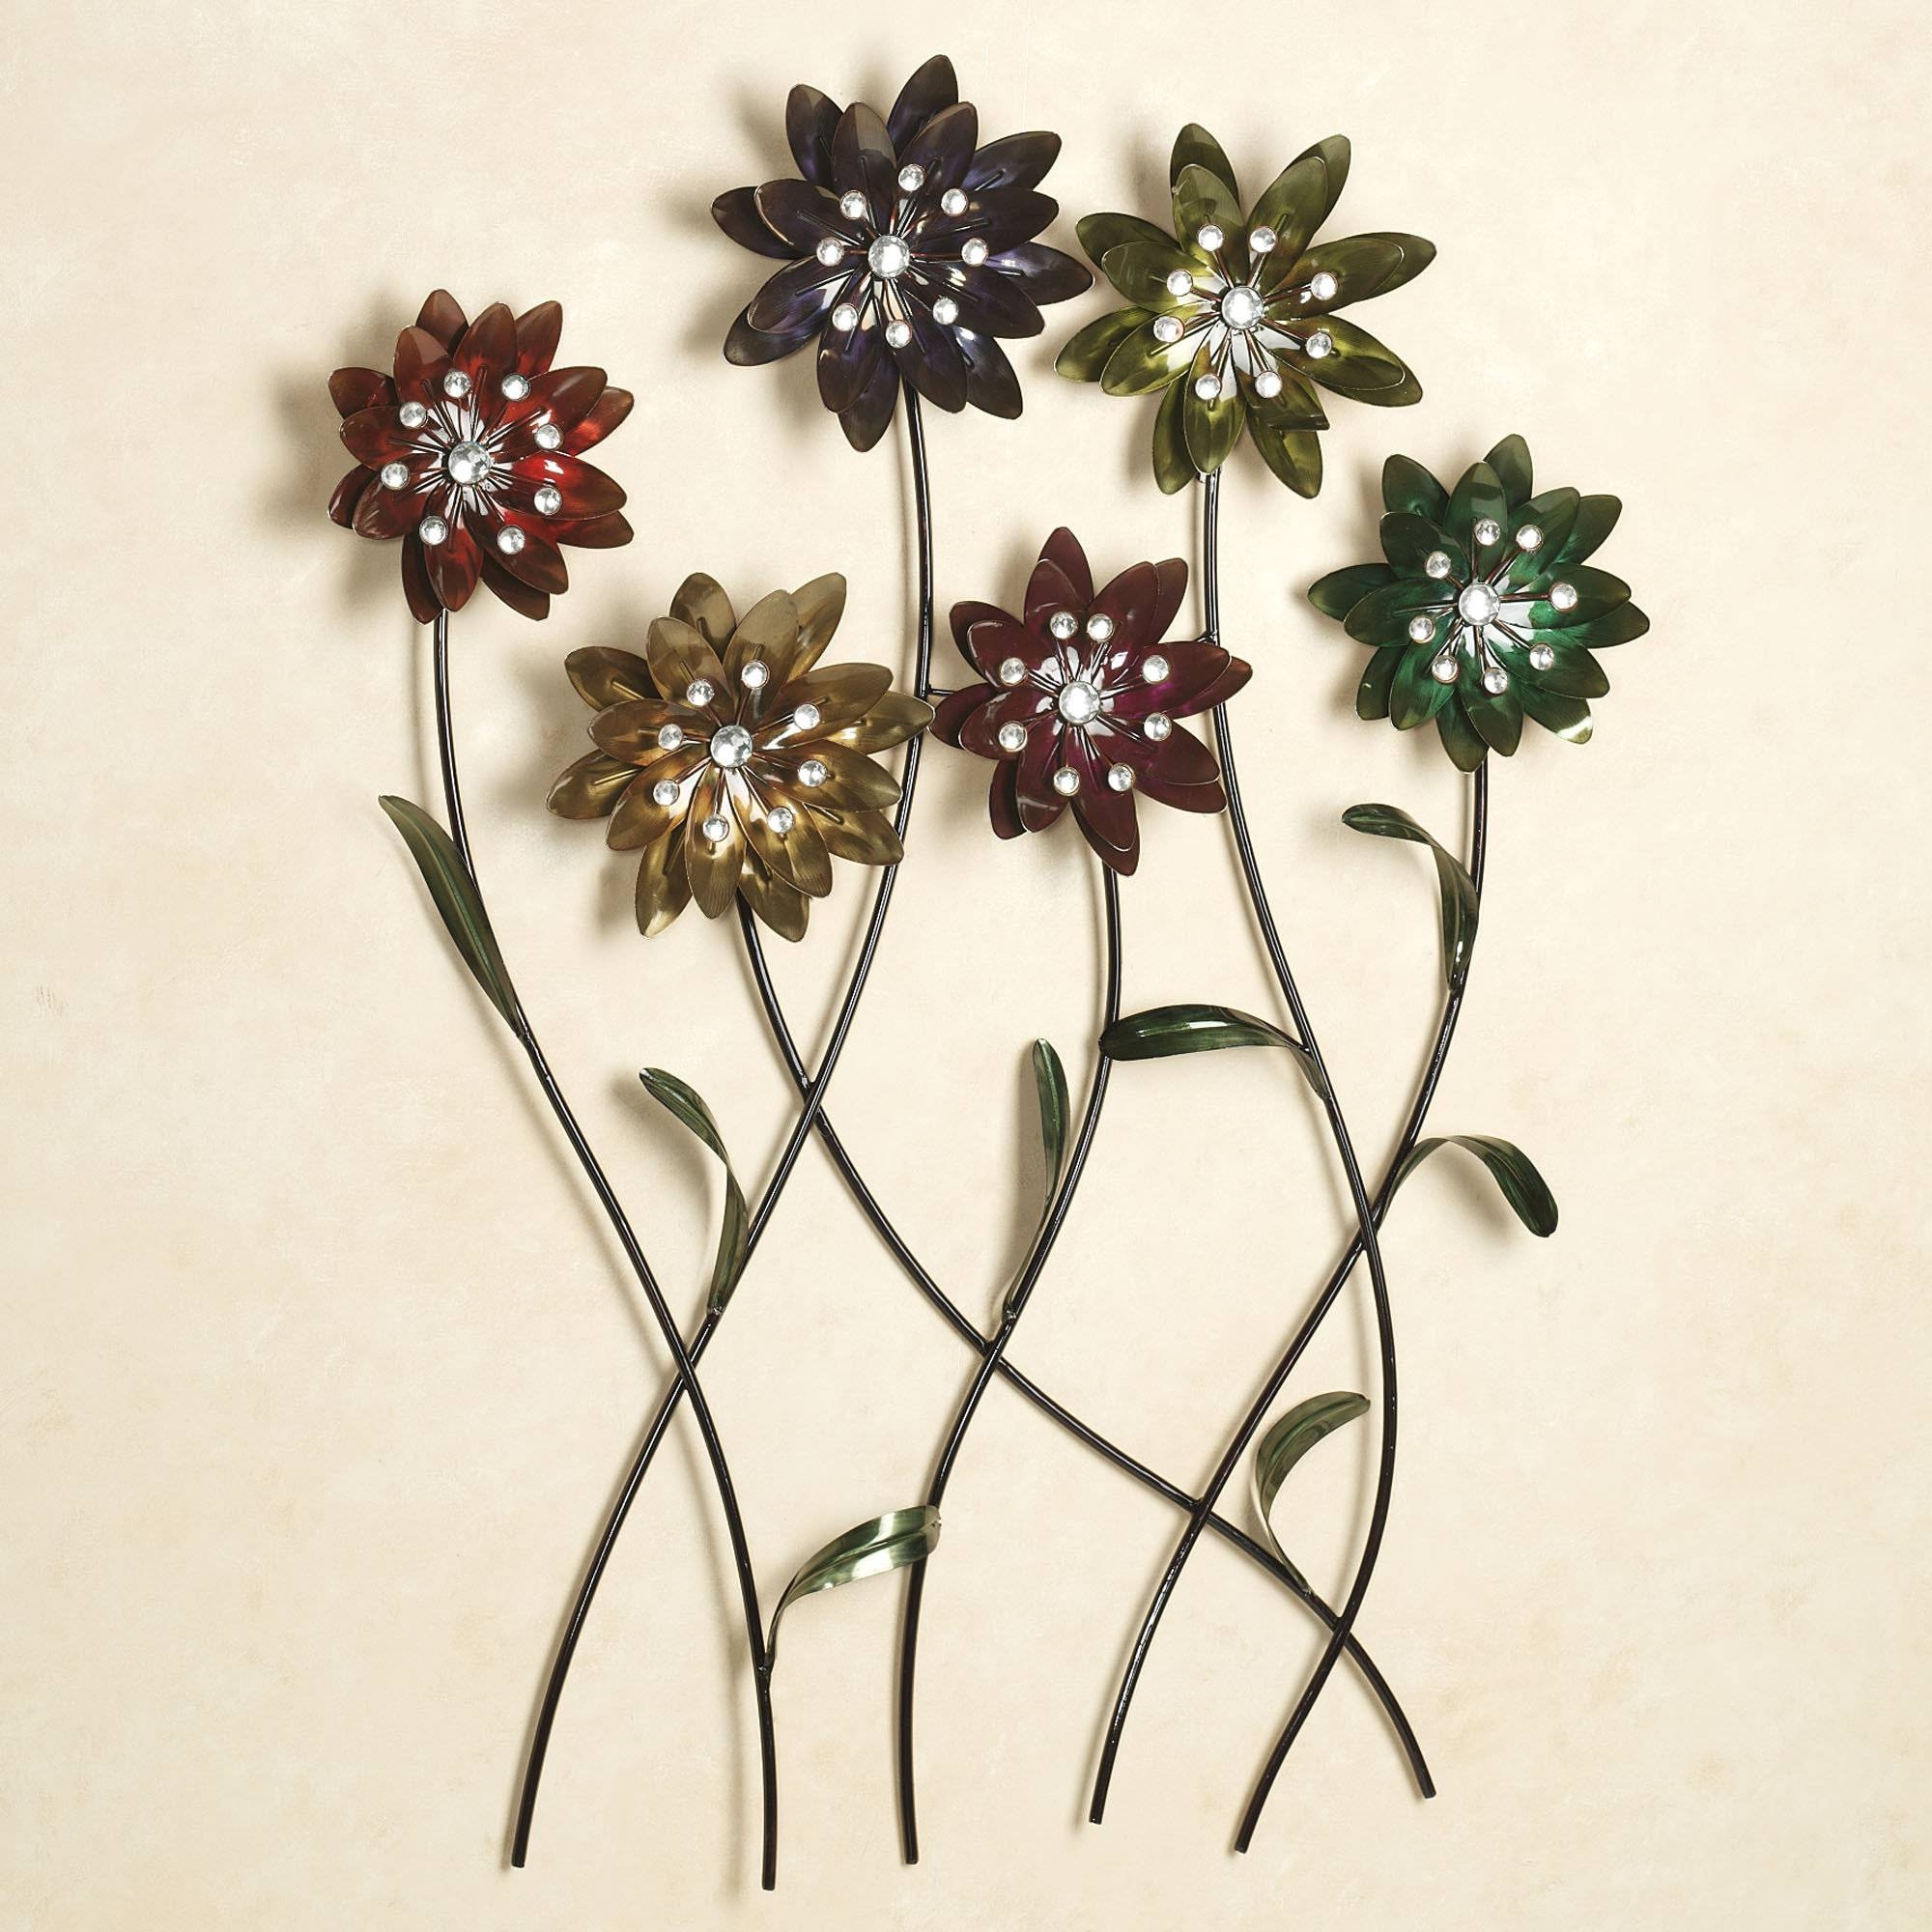 Wall Art Design Ideas: Touchofclass Metal Wall Flower Art Sample Throughout 2017 Floral Metal Wall Art (View 18 of 20)